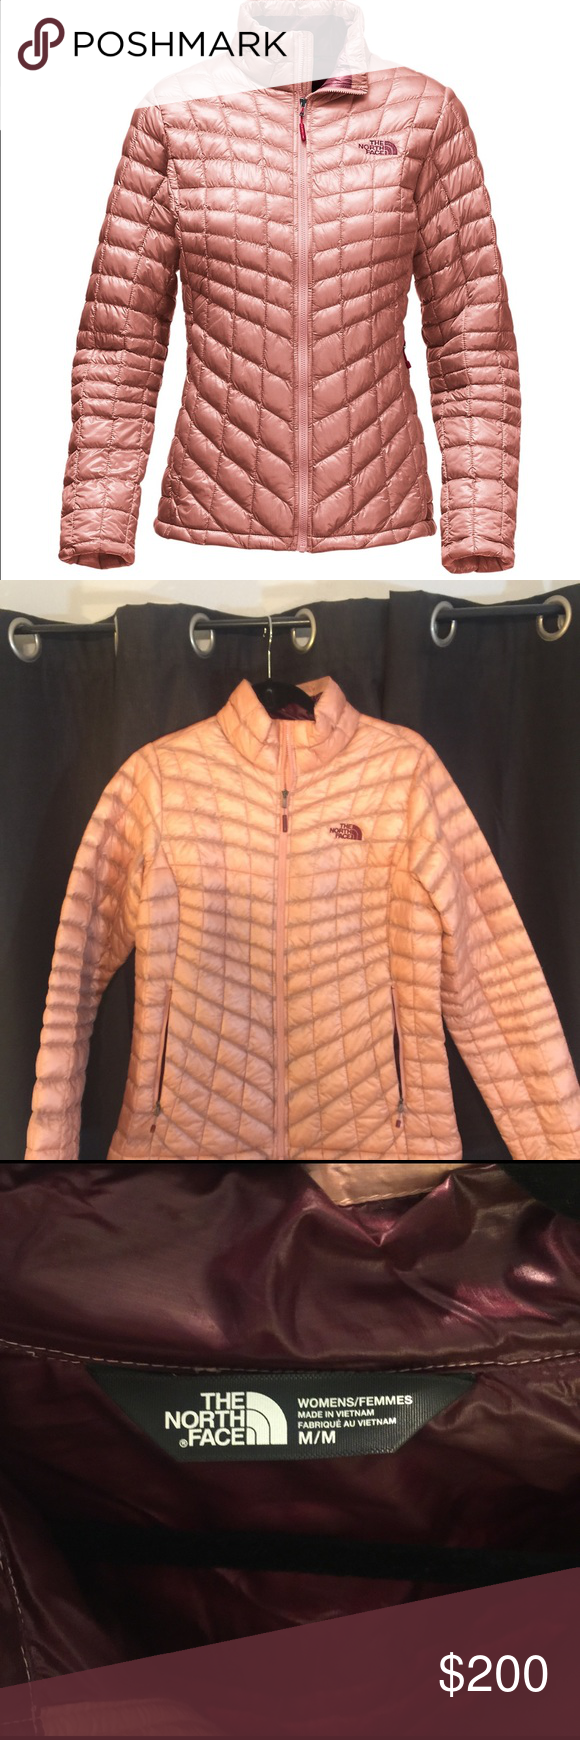 Women S The North Face Thermoball Jacket North Face Thermoball Jacket Jackets Rose Gold Jacket [ 1740 x 580 Pixel ]